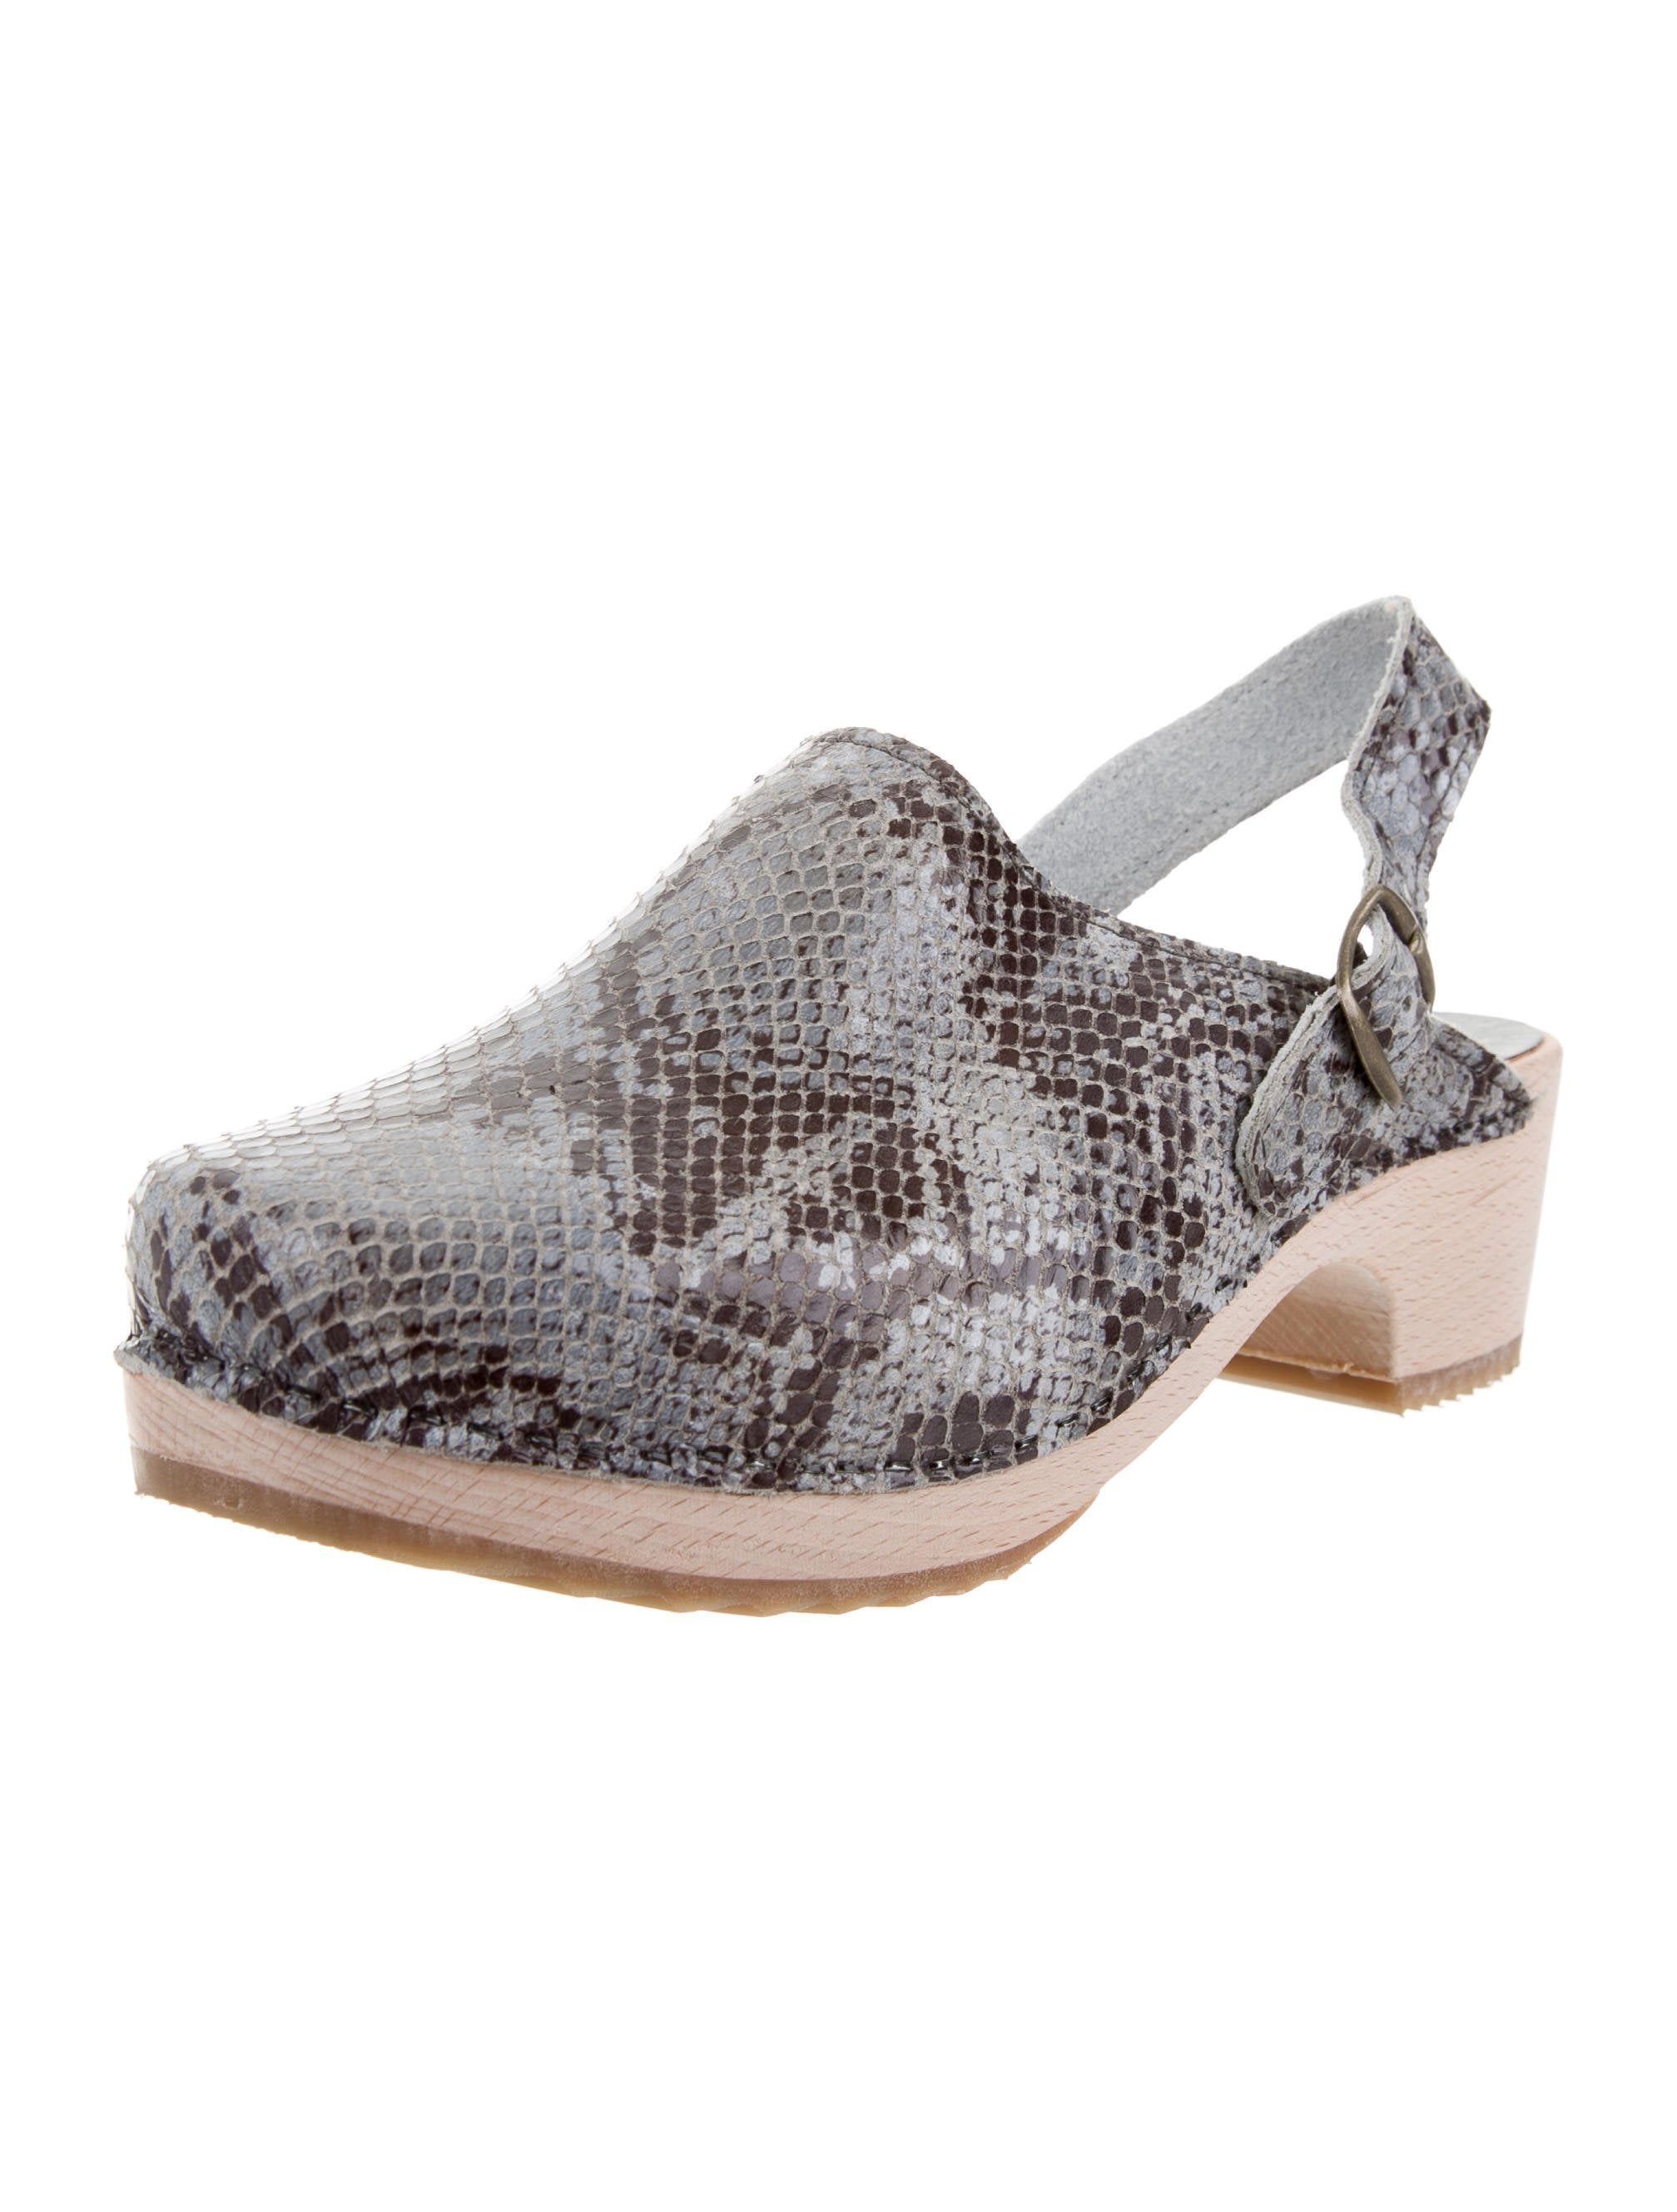 Bonpoint Snakeskin Buckle-Accented Clogs with paypal sale wiki buy cheap with paypal supply online get authentic qixsKu0H